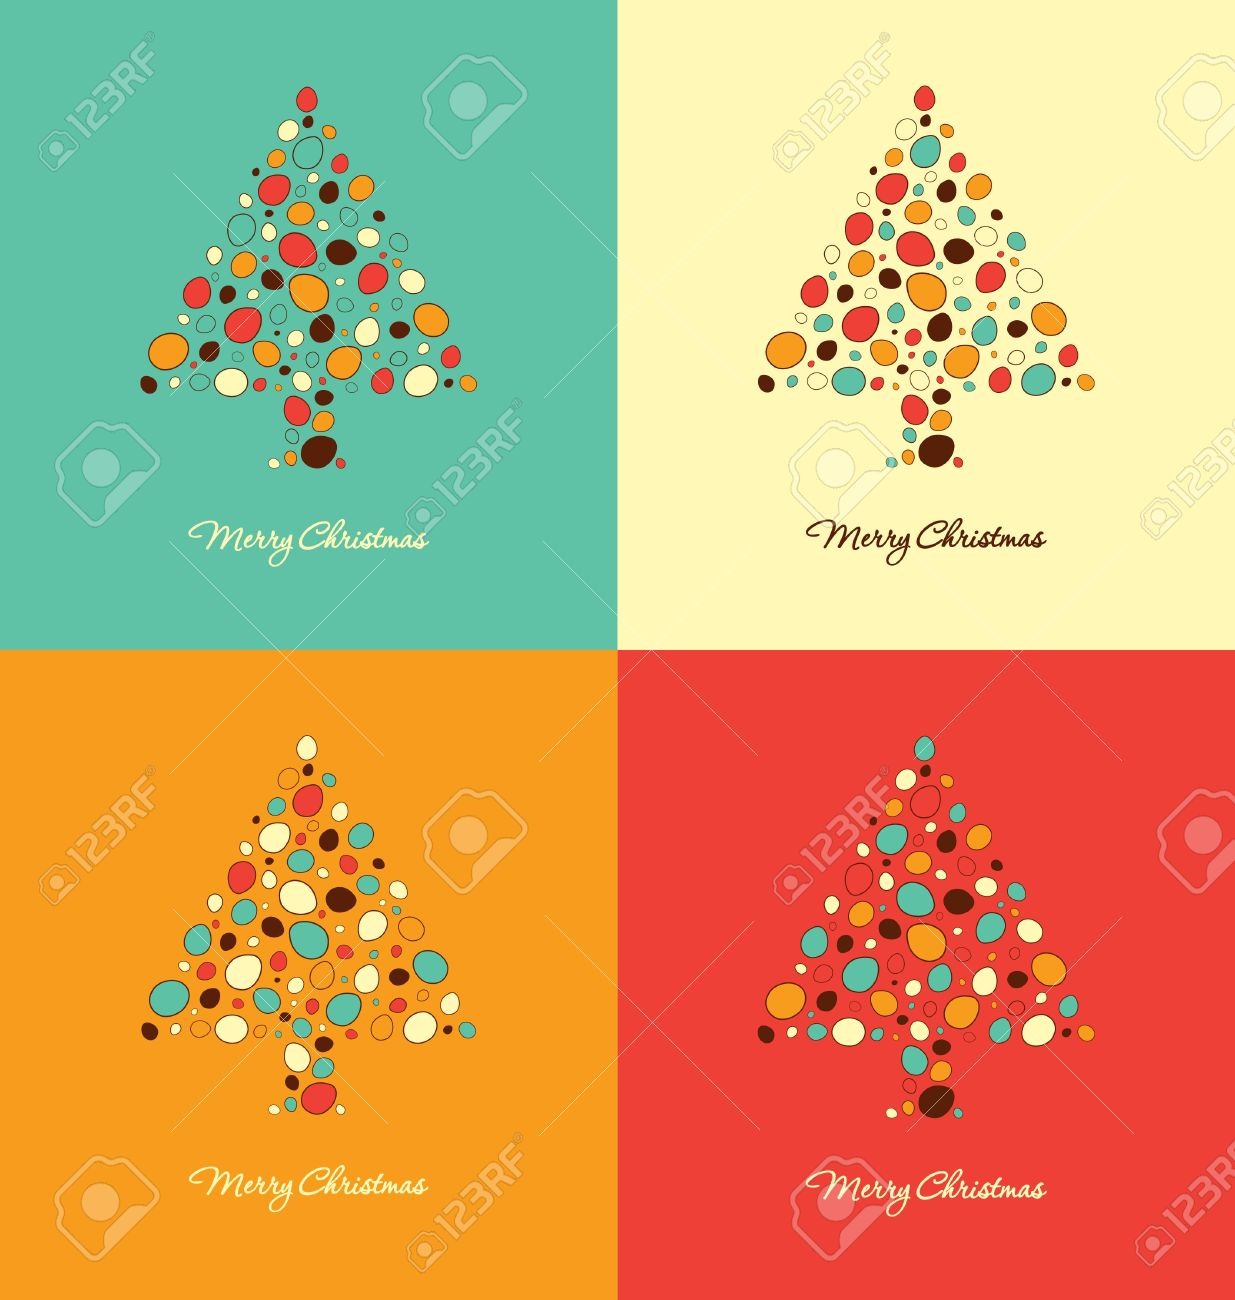 Christmas Design Amusing Christmas Card Design Templates Royalty Free  Cliparts Vectors . 2017